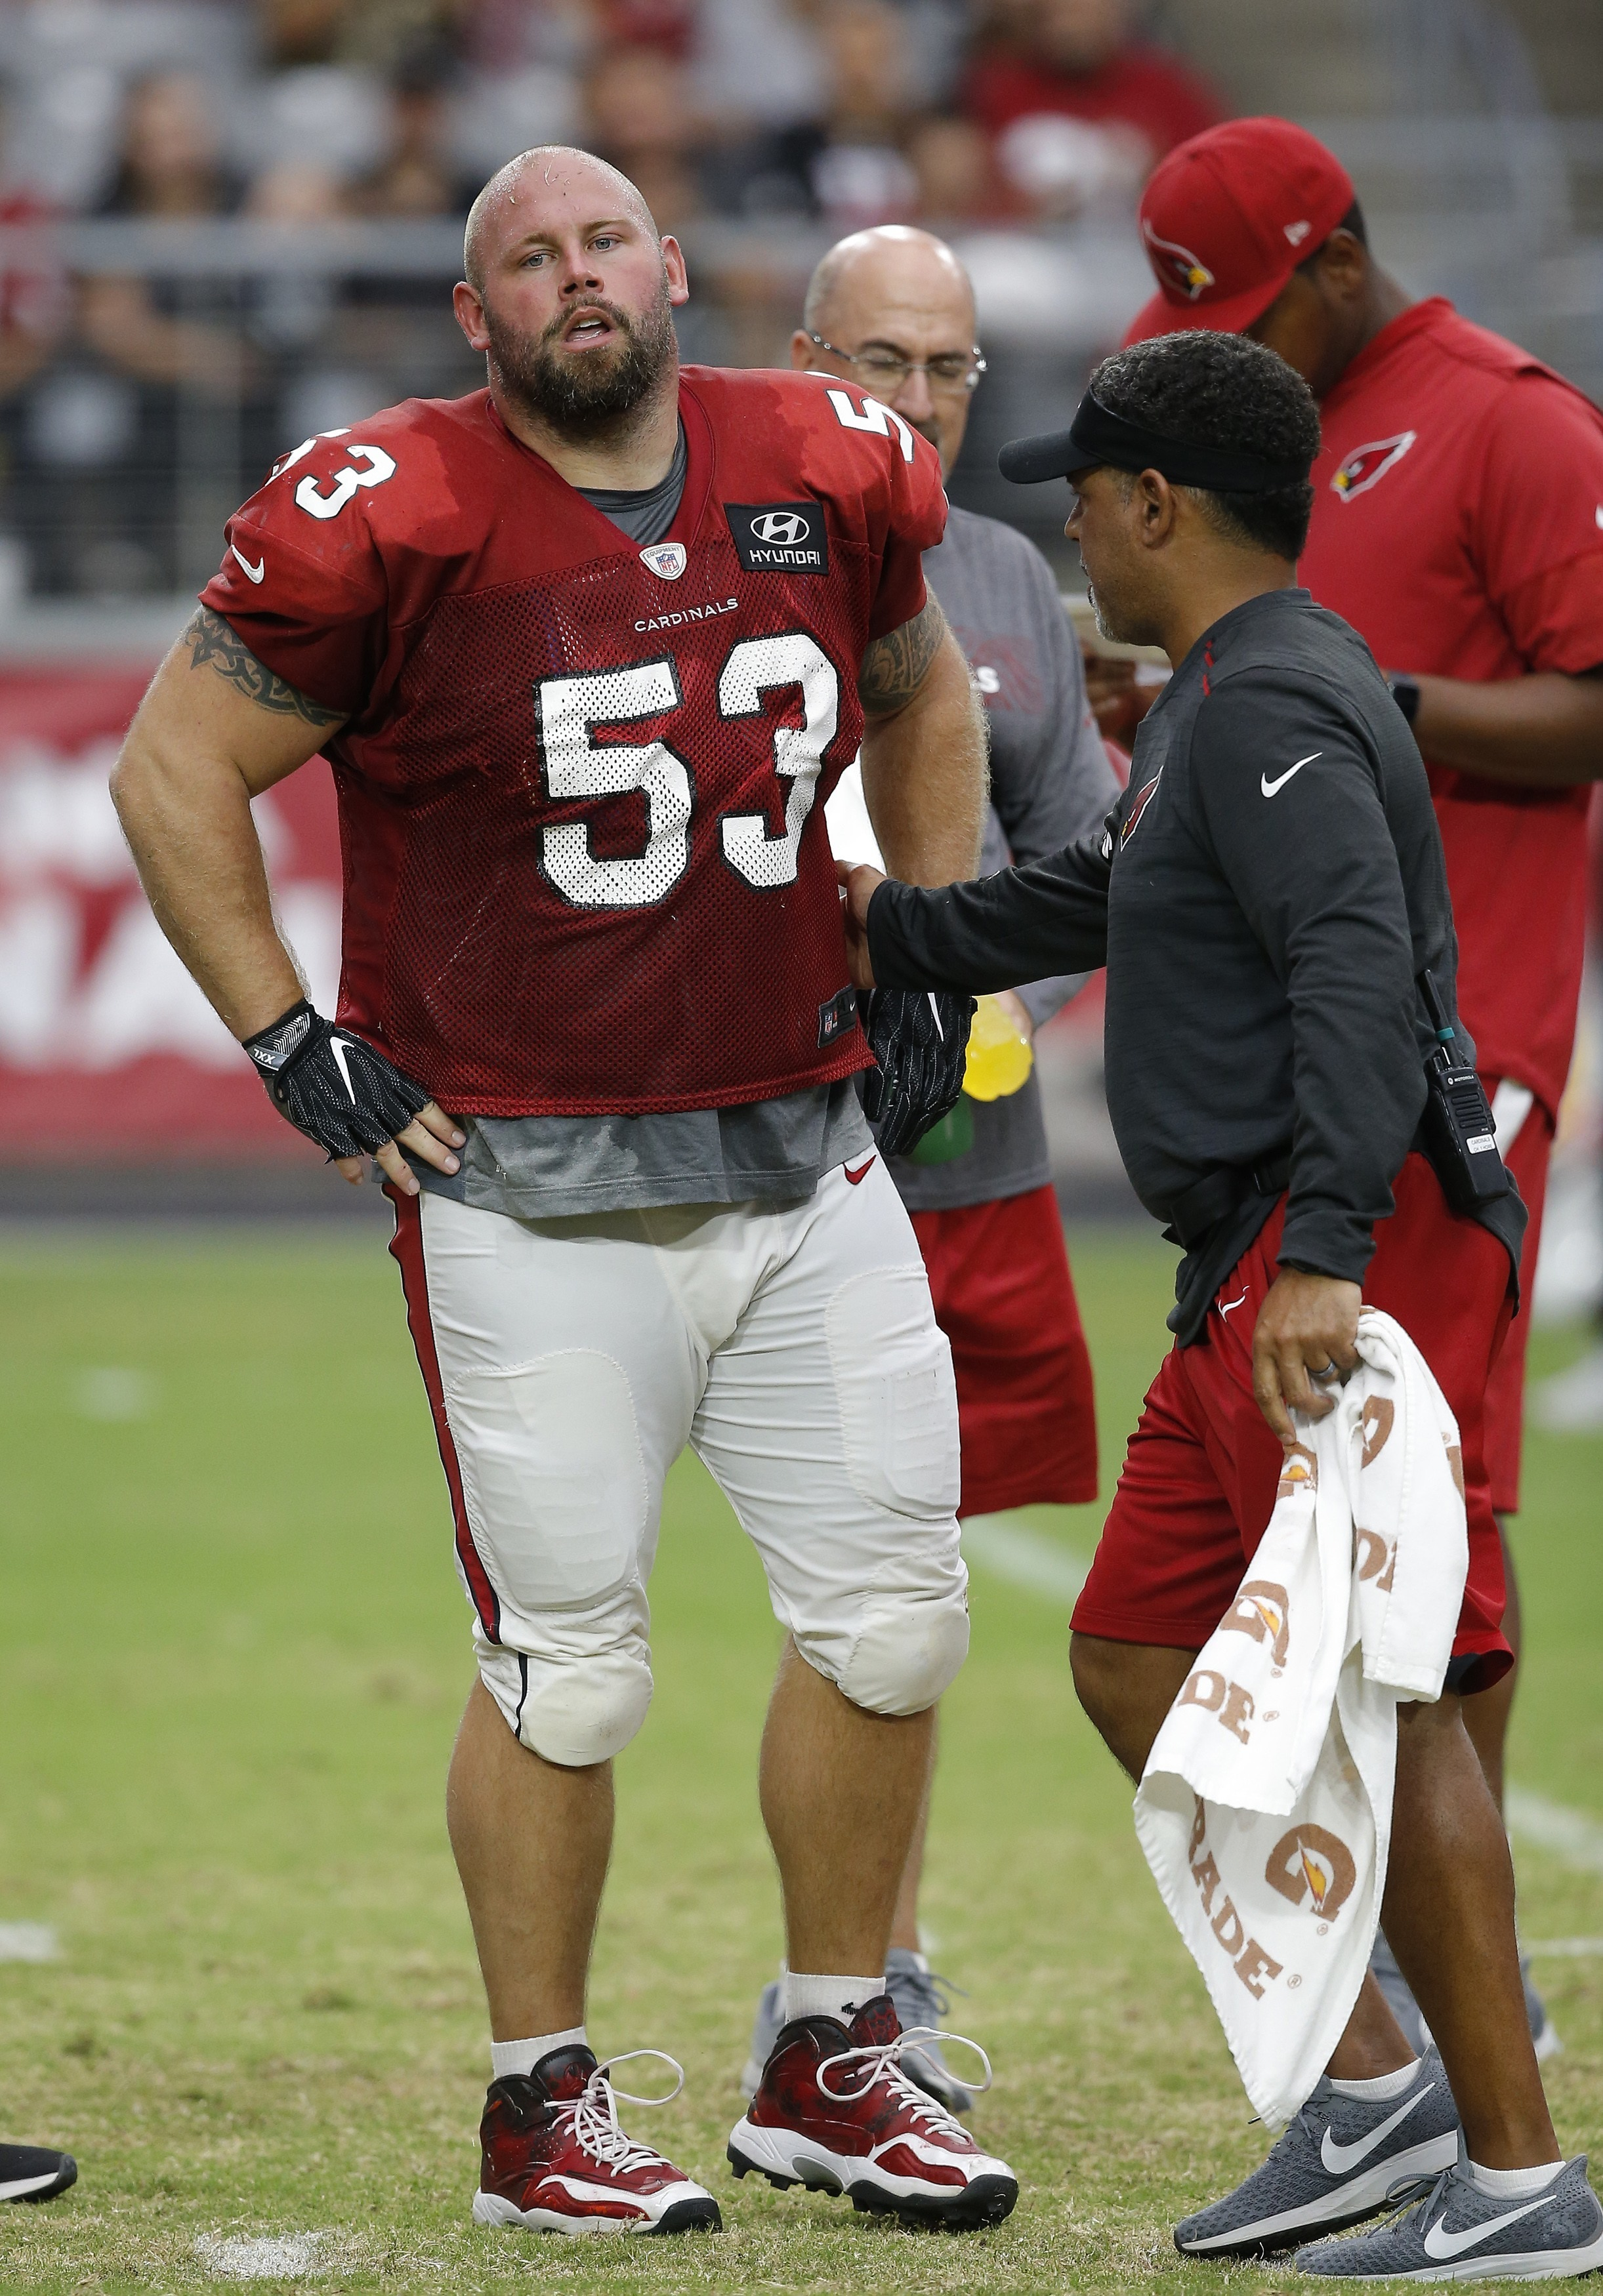 Cardinals center Shipley tears ACL, rookie Cole replaces him